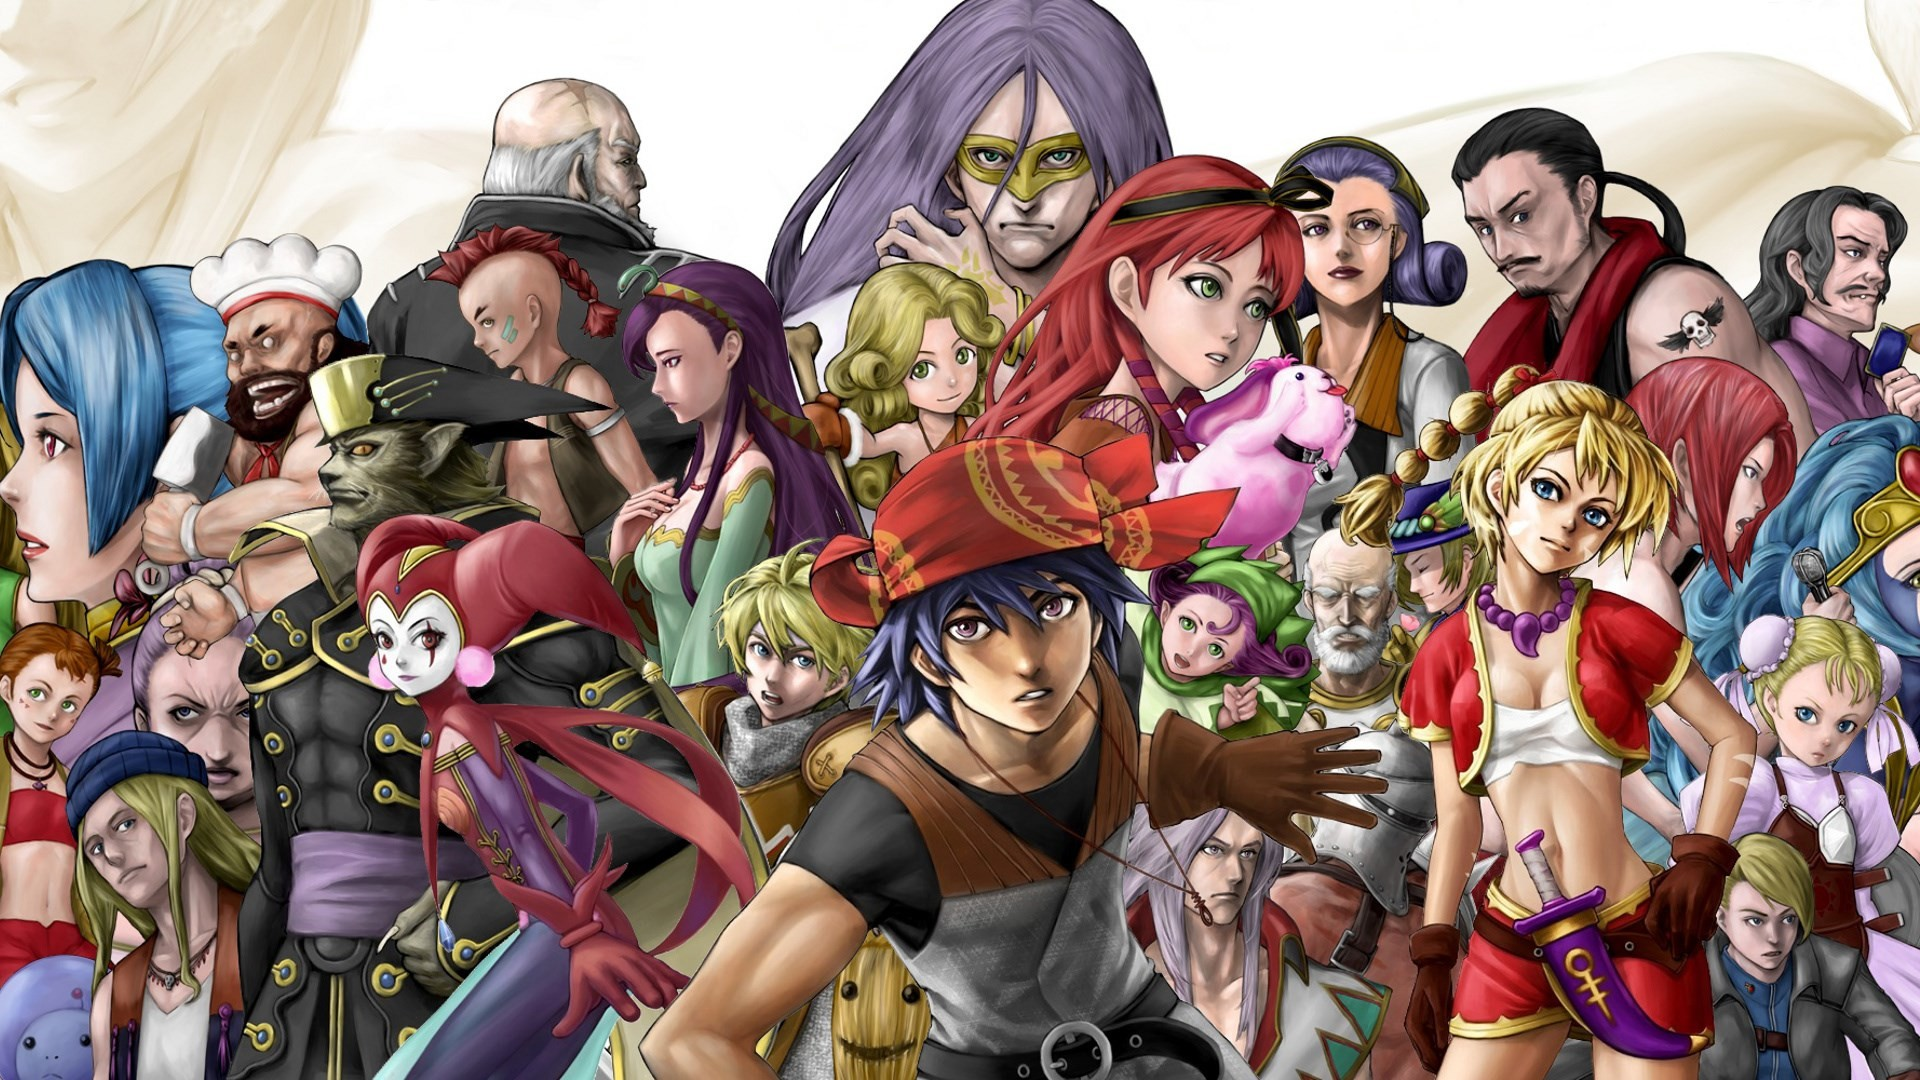 beautiful pictures of chrono cross, 526 kB – Halle Gill